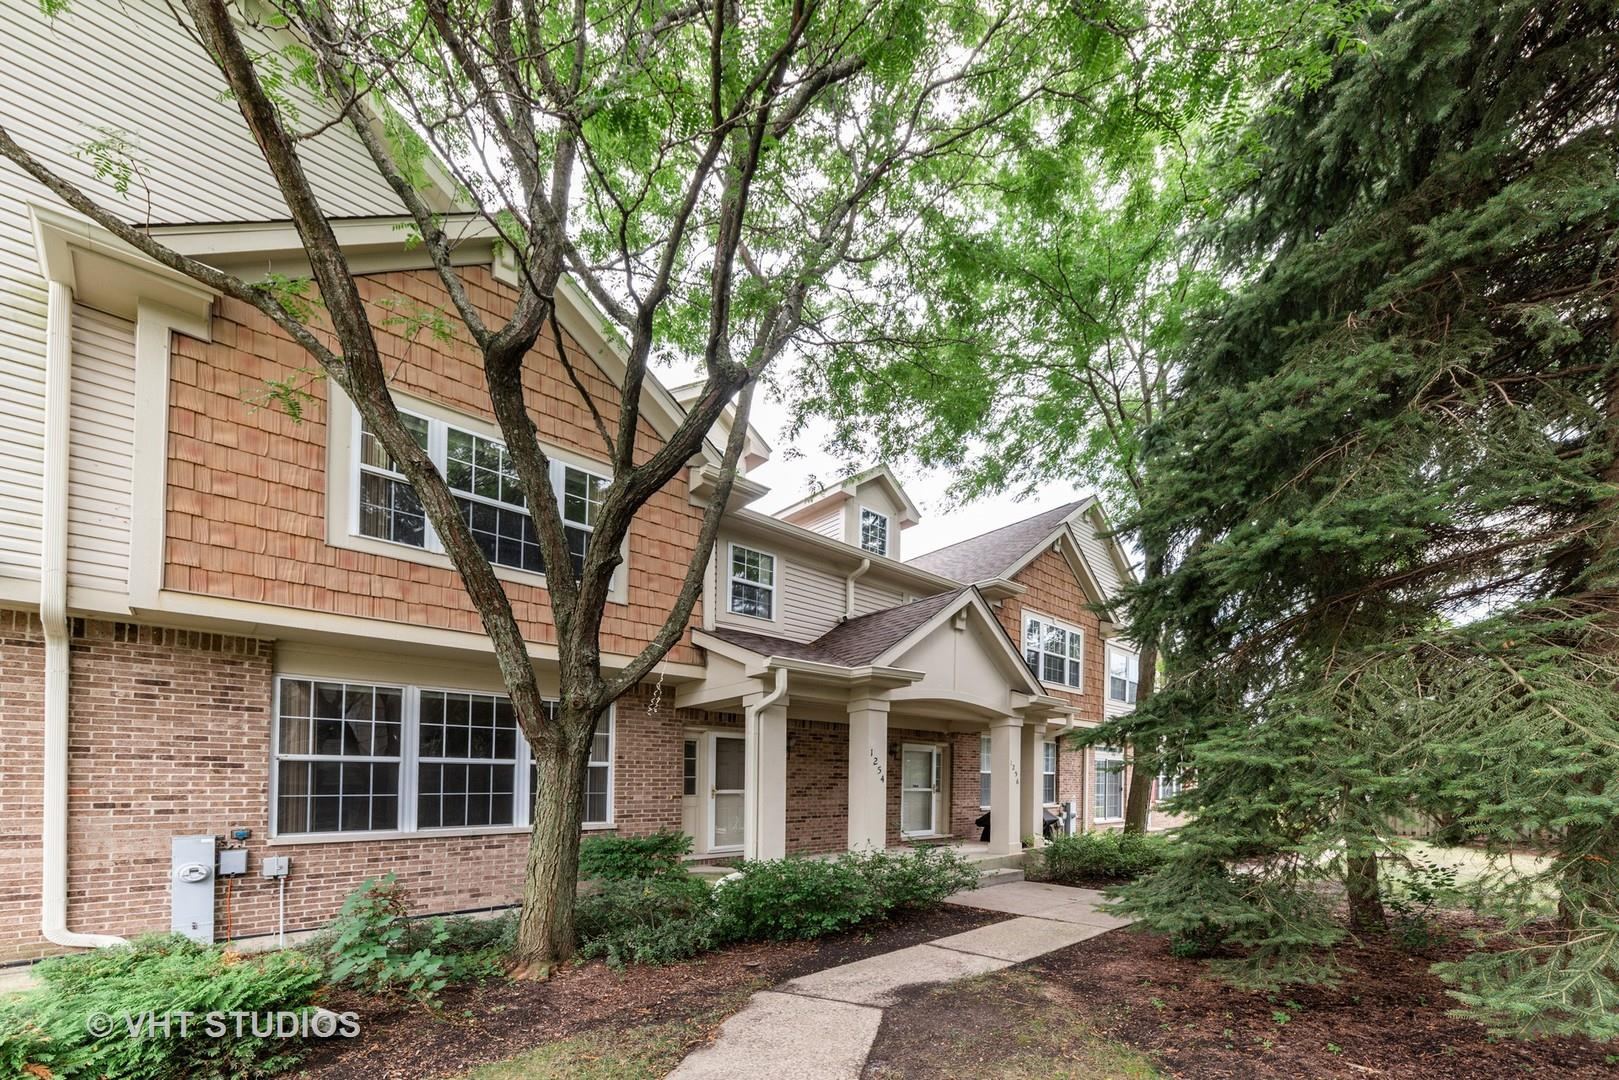 1254 S GEORGETOWN Way #1254, Vernon Hills, IL 60061 - #: 10742540